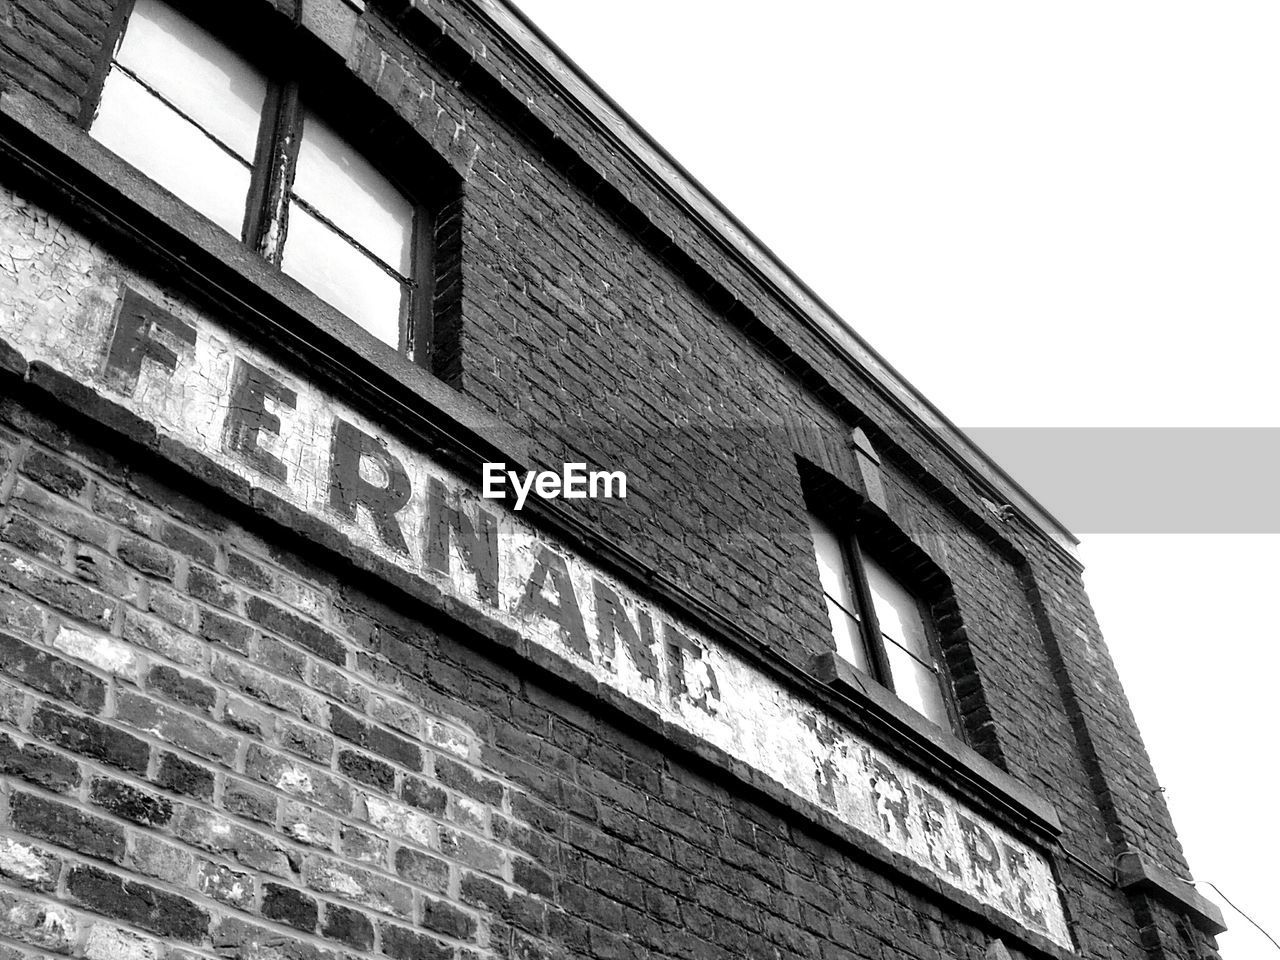 low angle view, building exterior, architecture, built structure, text, window, no people, brick wall, day, outdoors, clear sky, sky